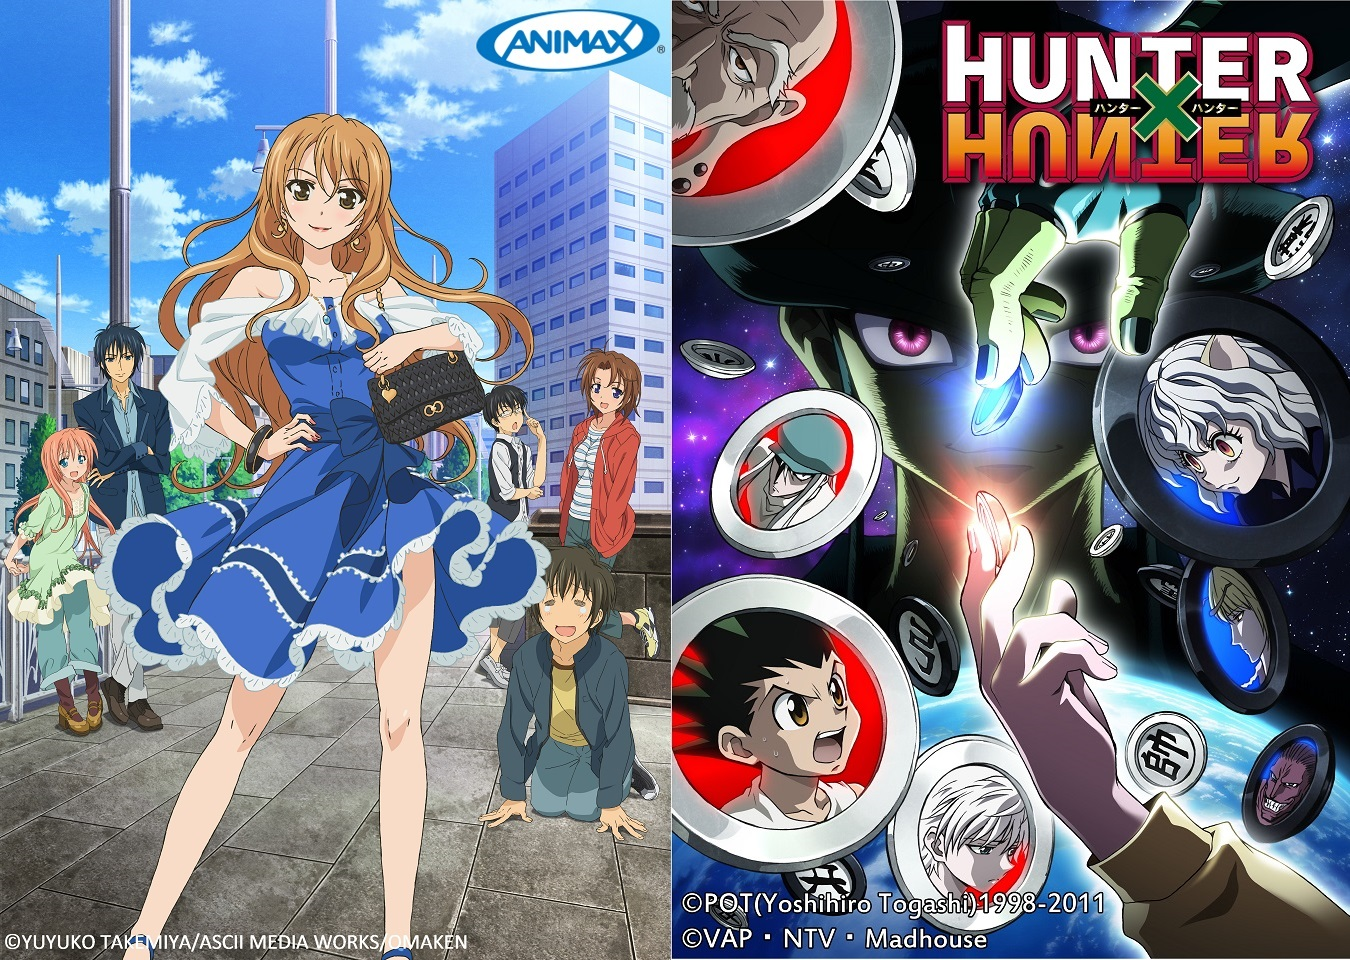 Animax's New Lineup for November 2014